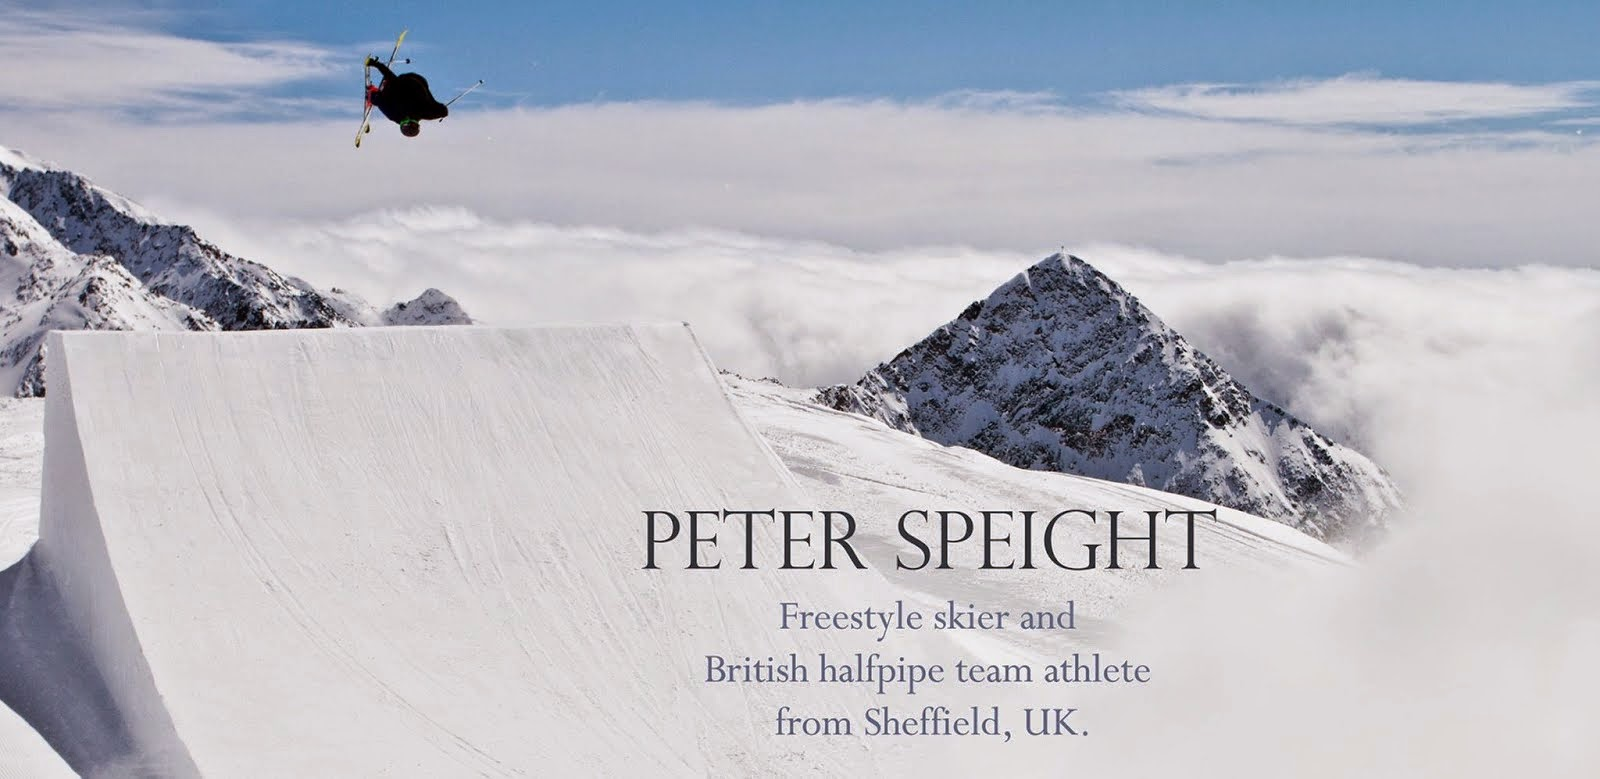 www.peterspeight.co.uk